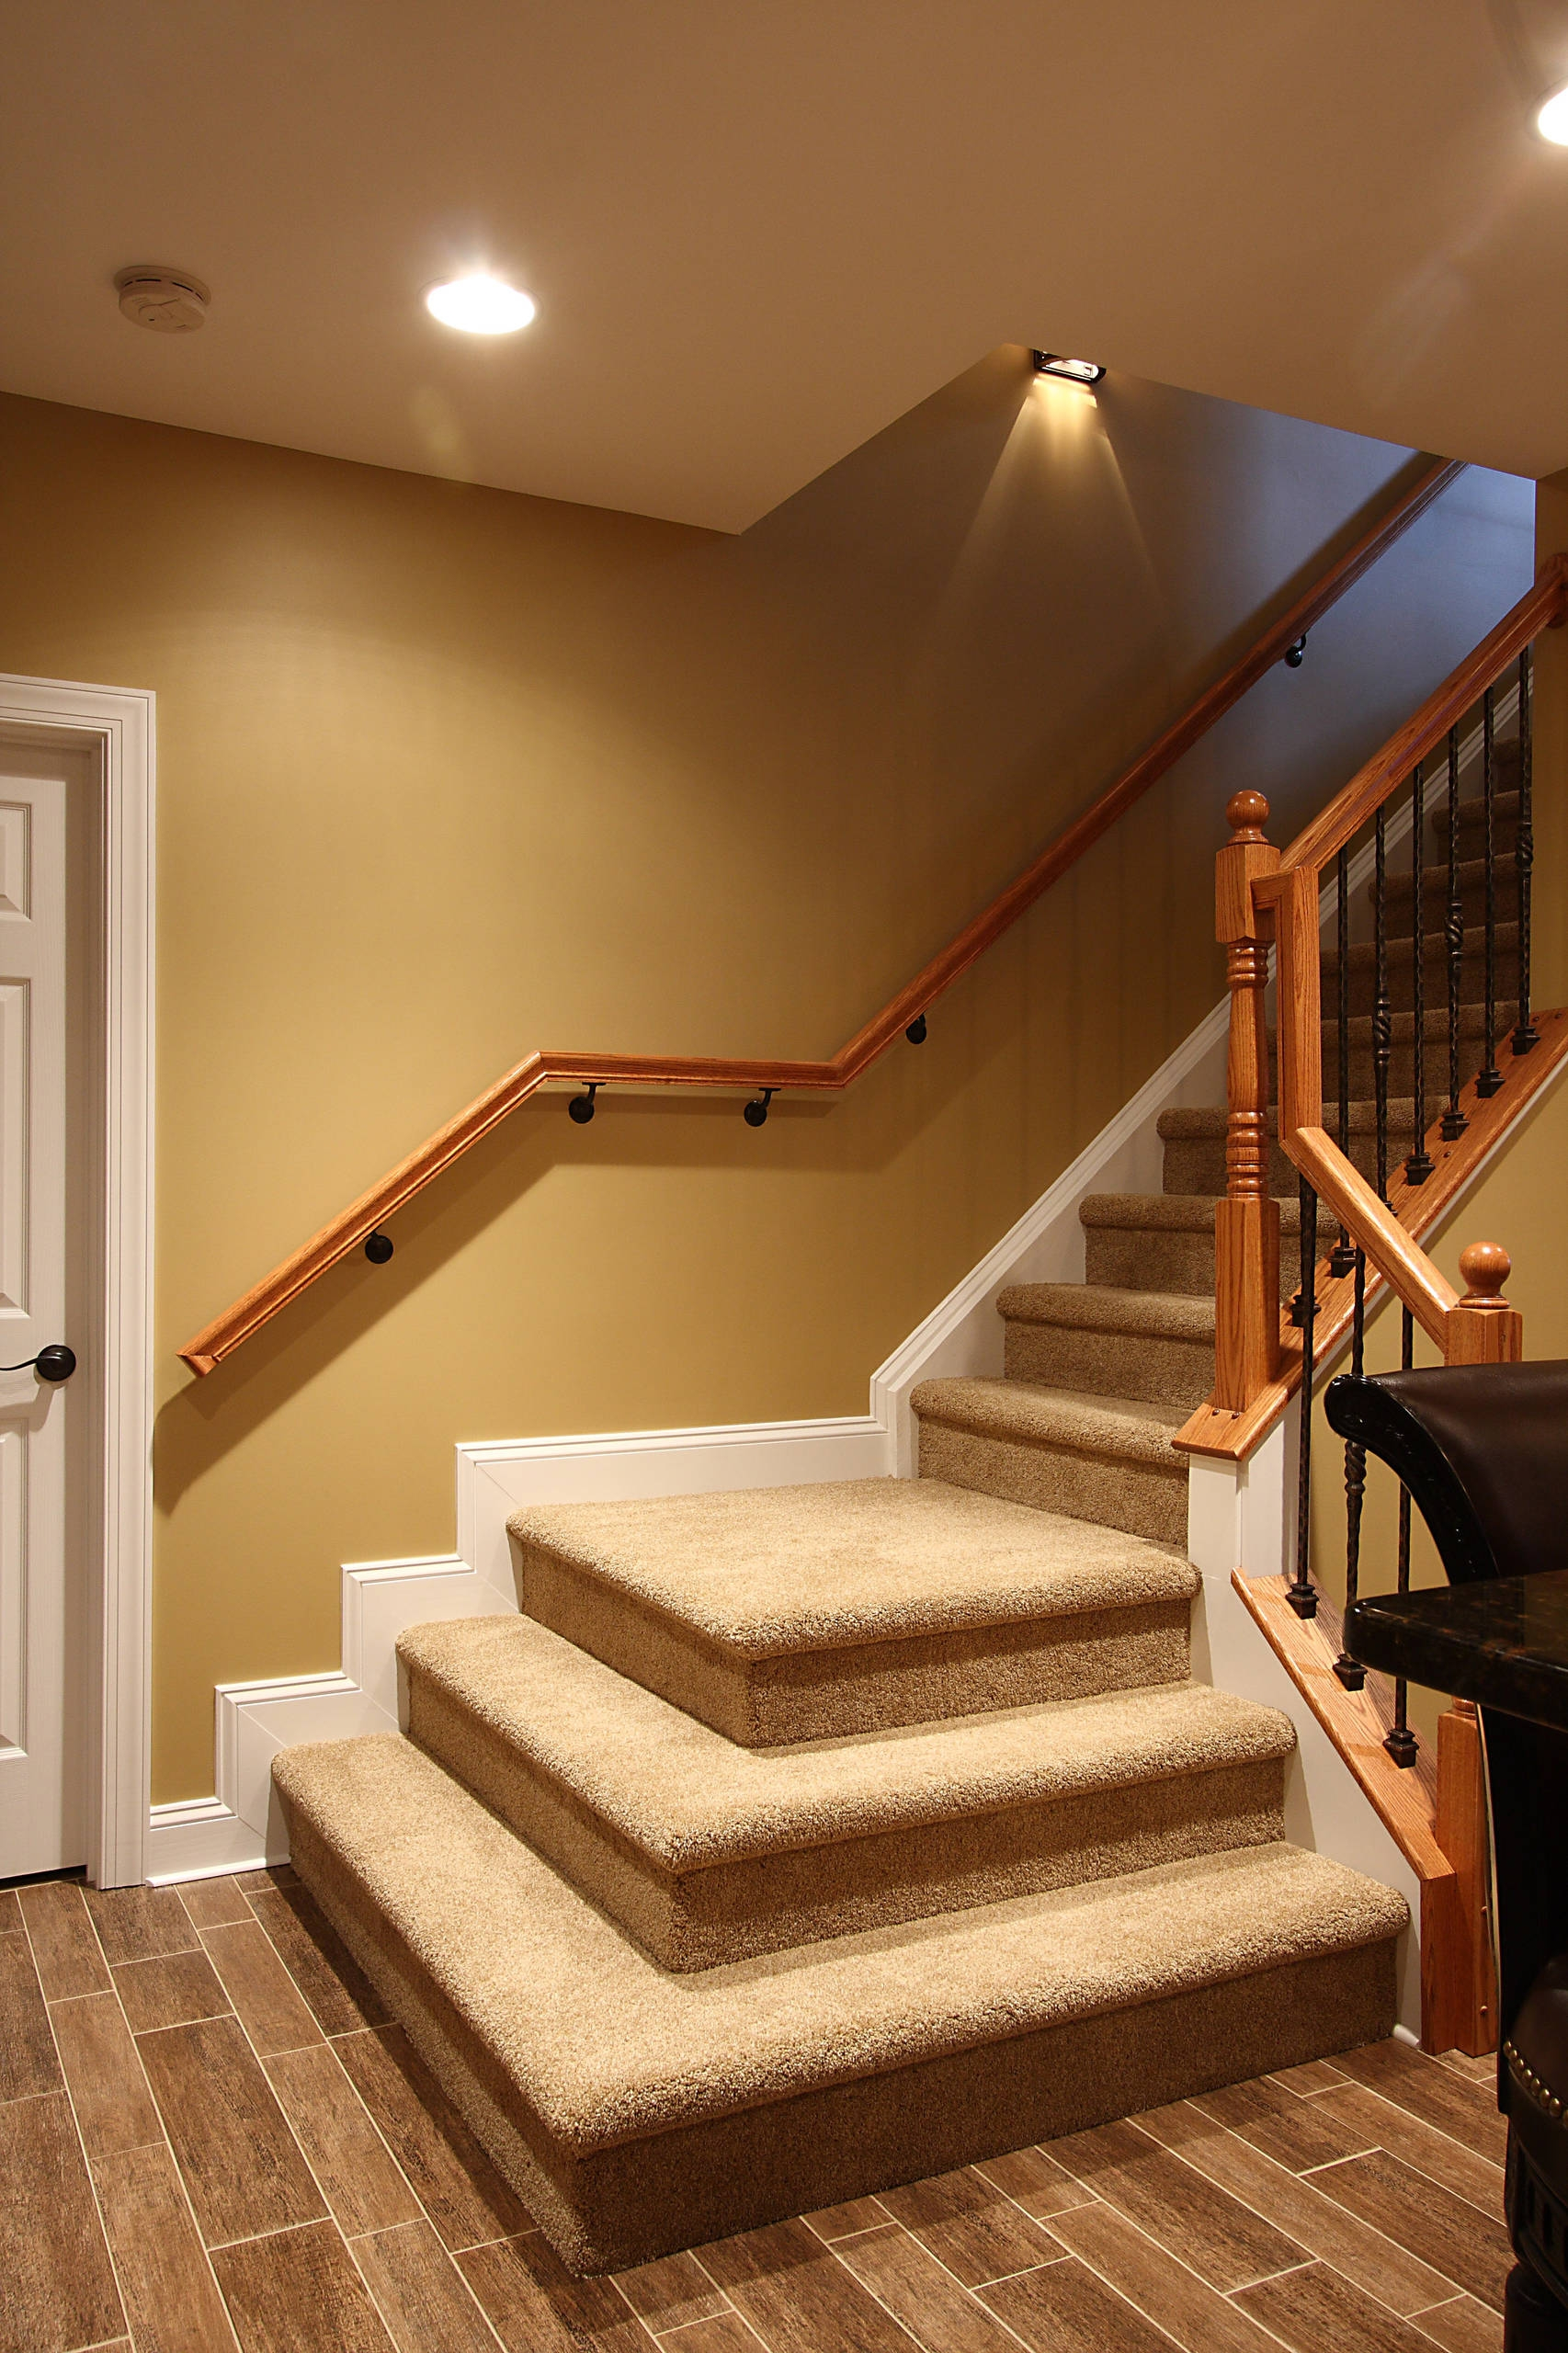 Basement Stairs Houzz   Spiral Staircase Into Basement   Stair Railing   Attic Stairs   Stair Treads   Stairway   Staircase Ideas